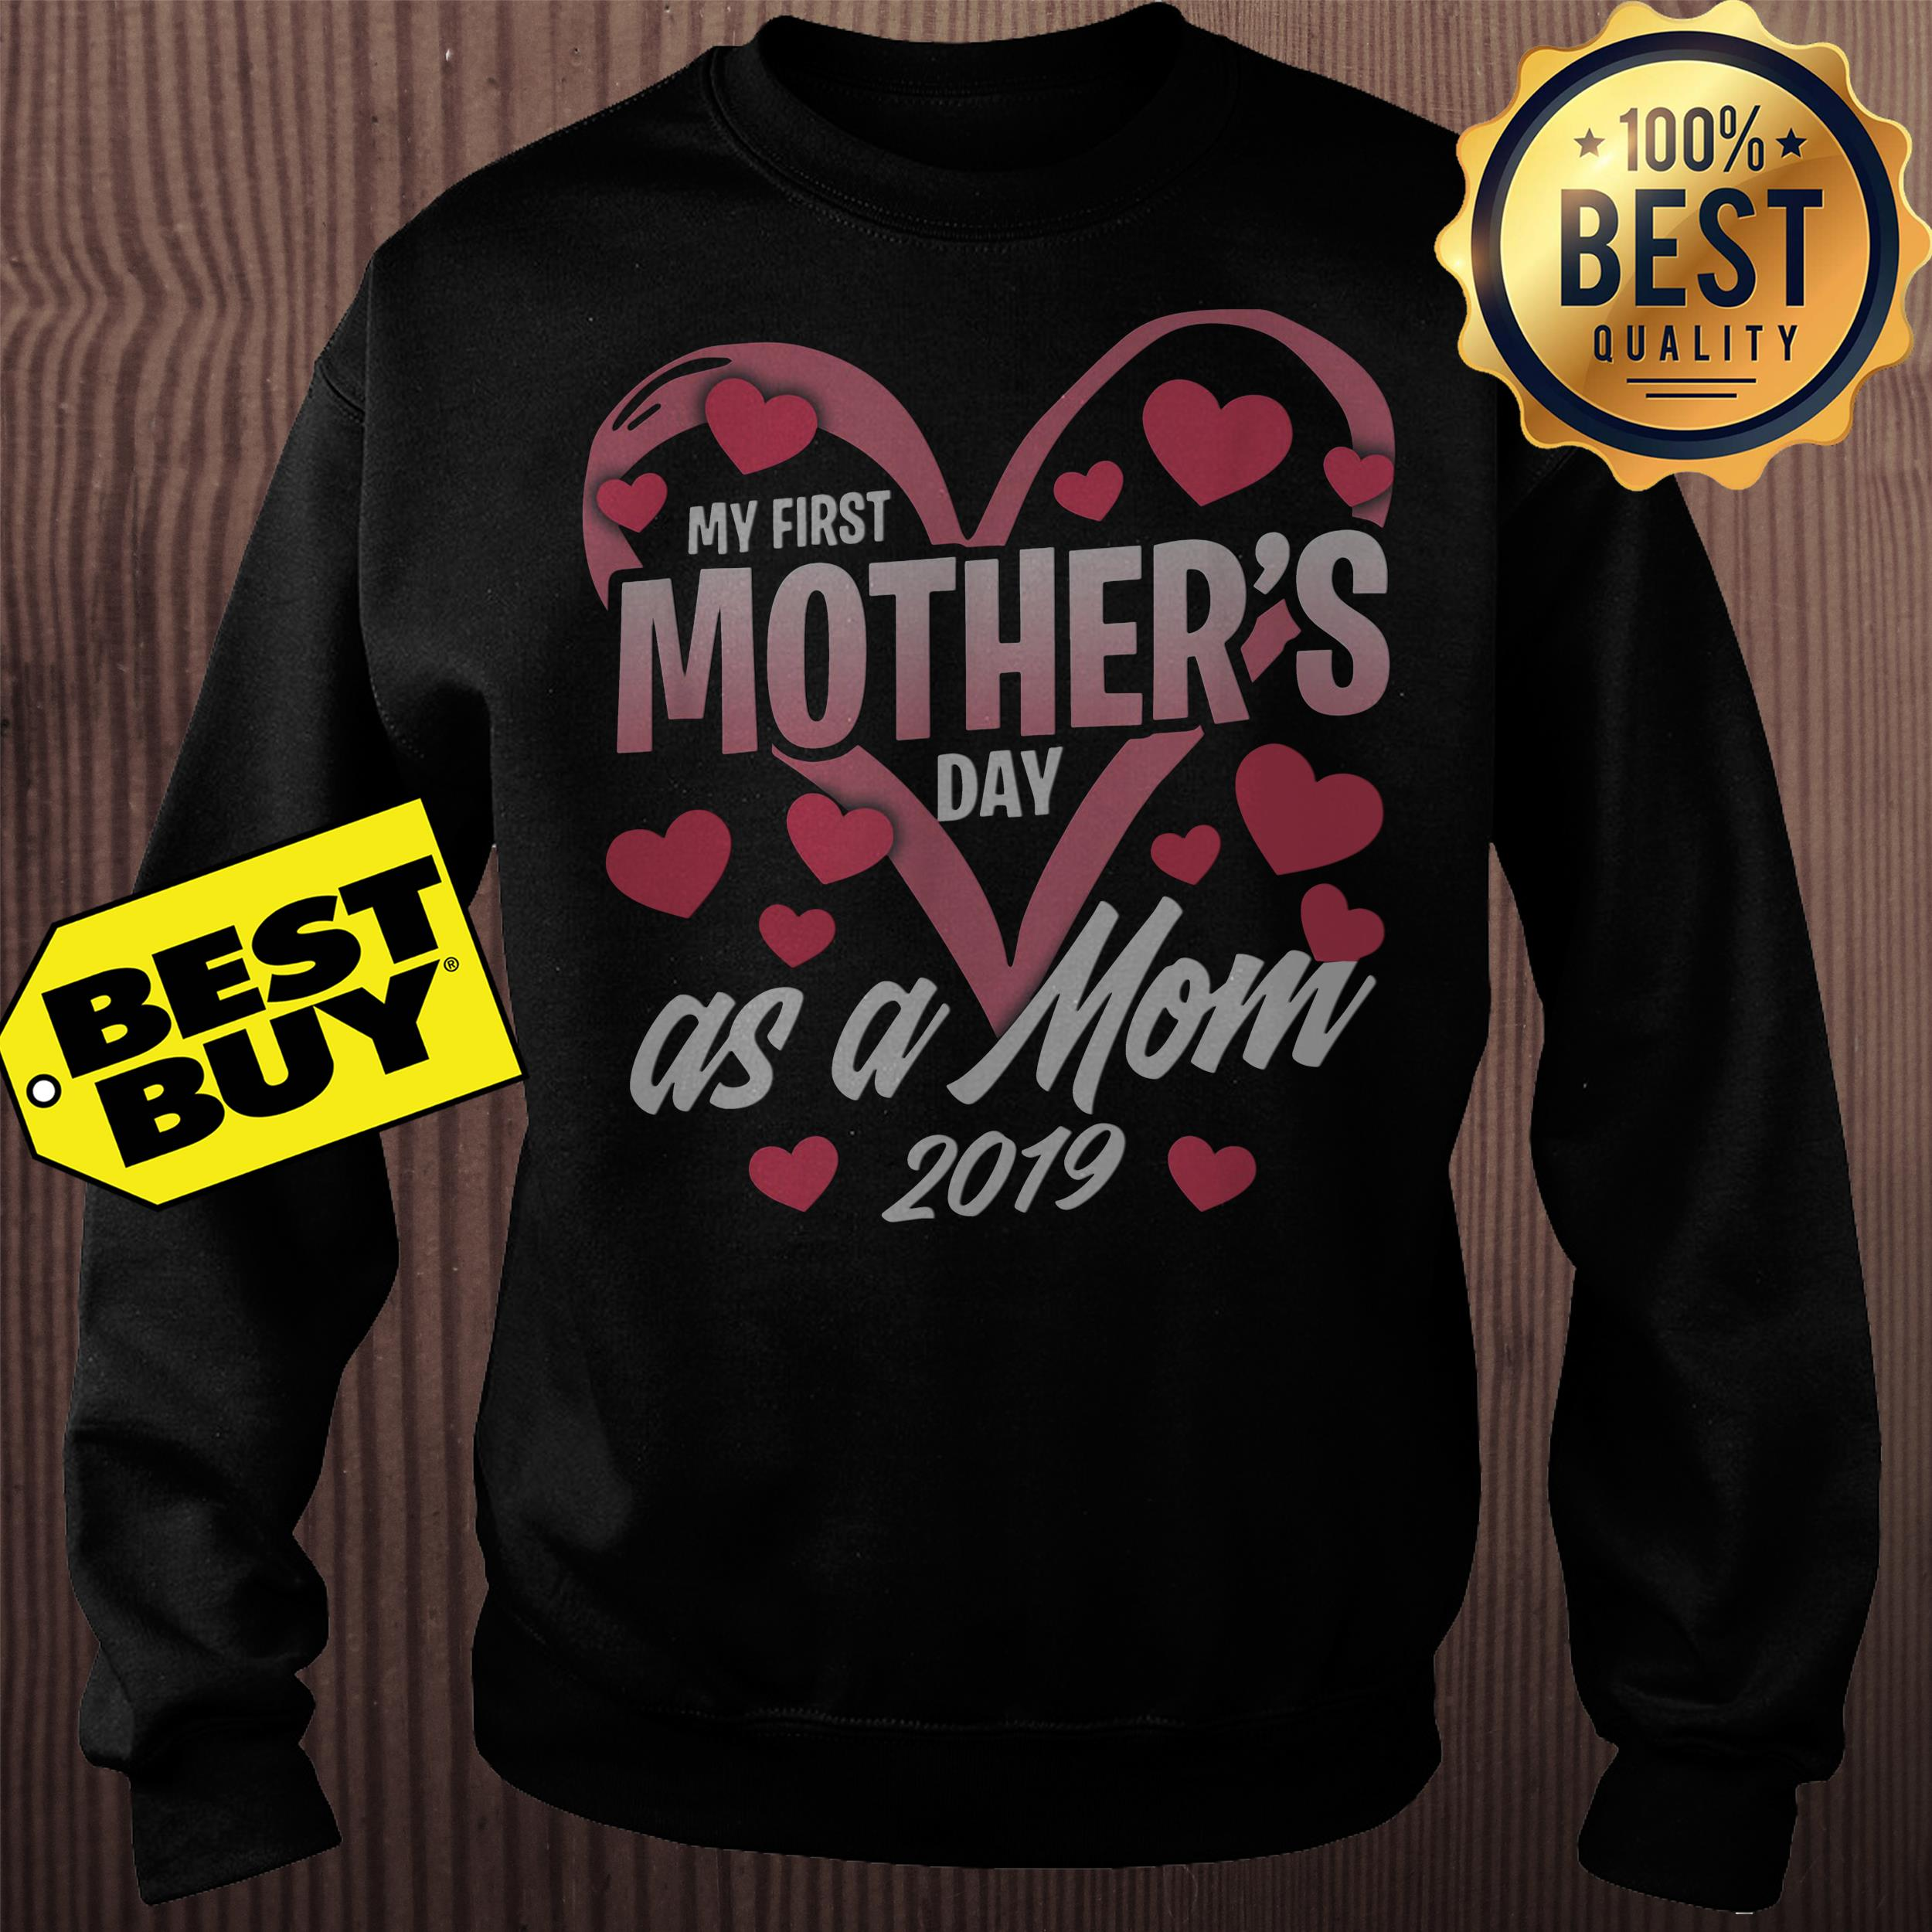 My first mother's day as a mom 2019 sweatshirt